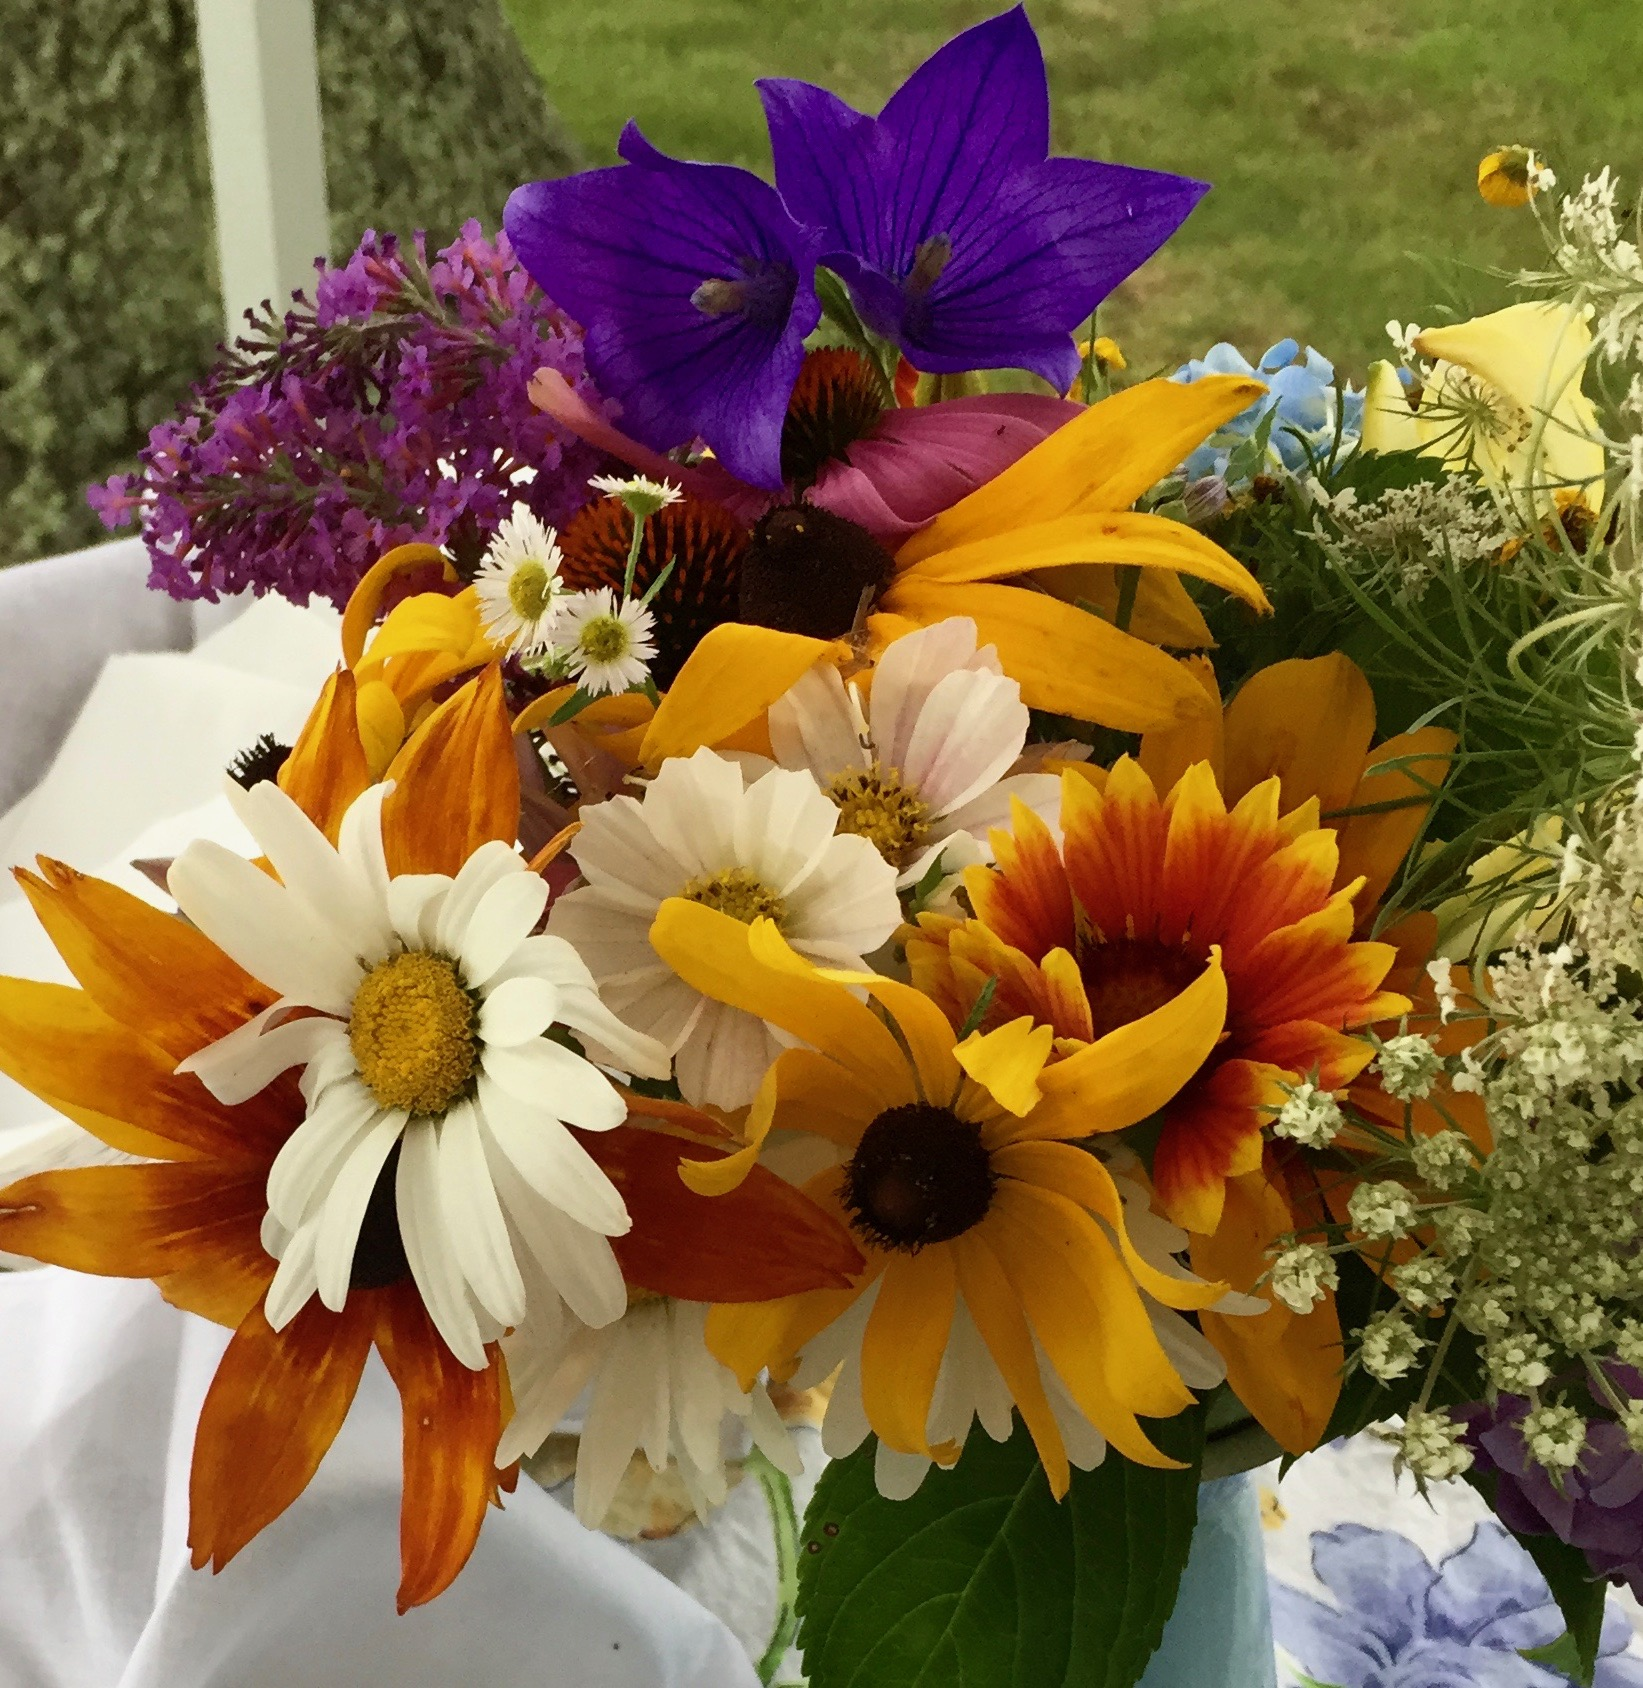 Our Farm Even Has Beautiful Wild Flowers